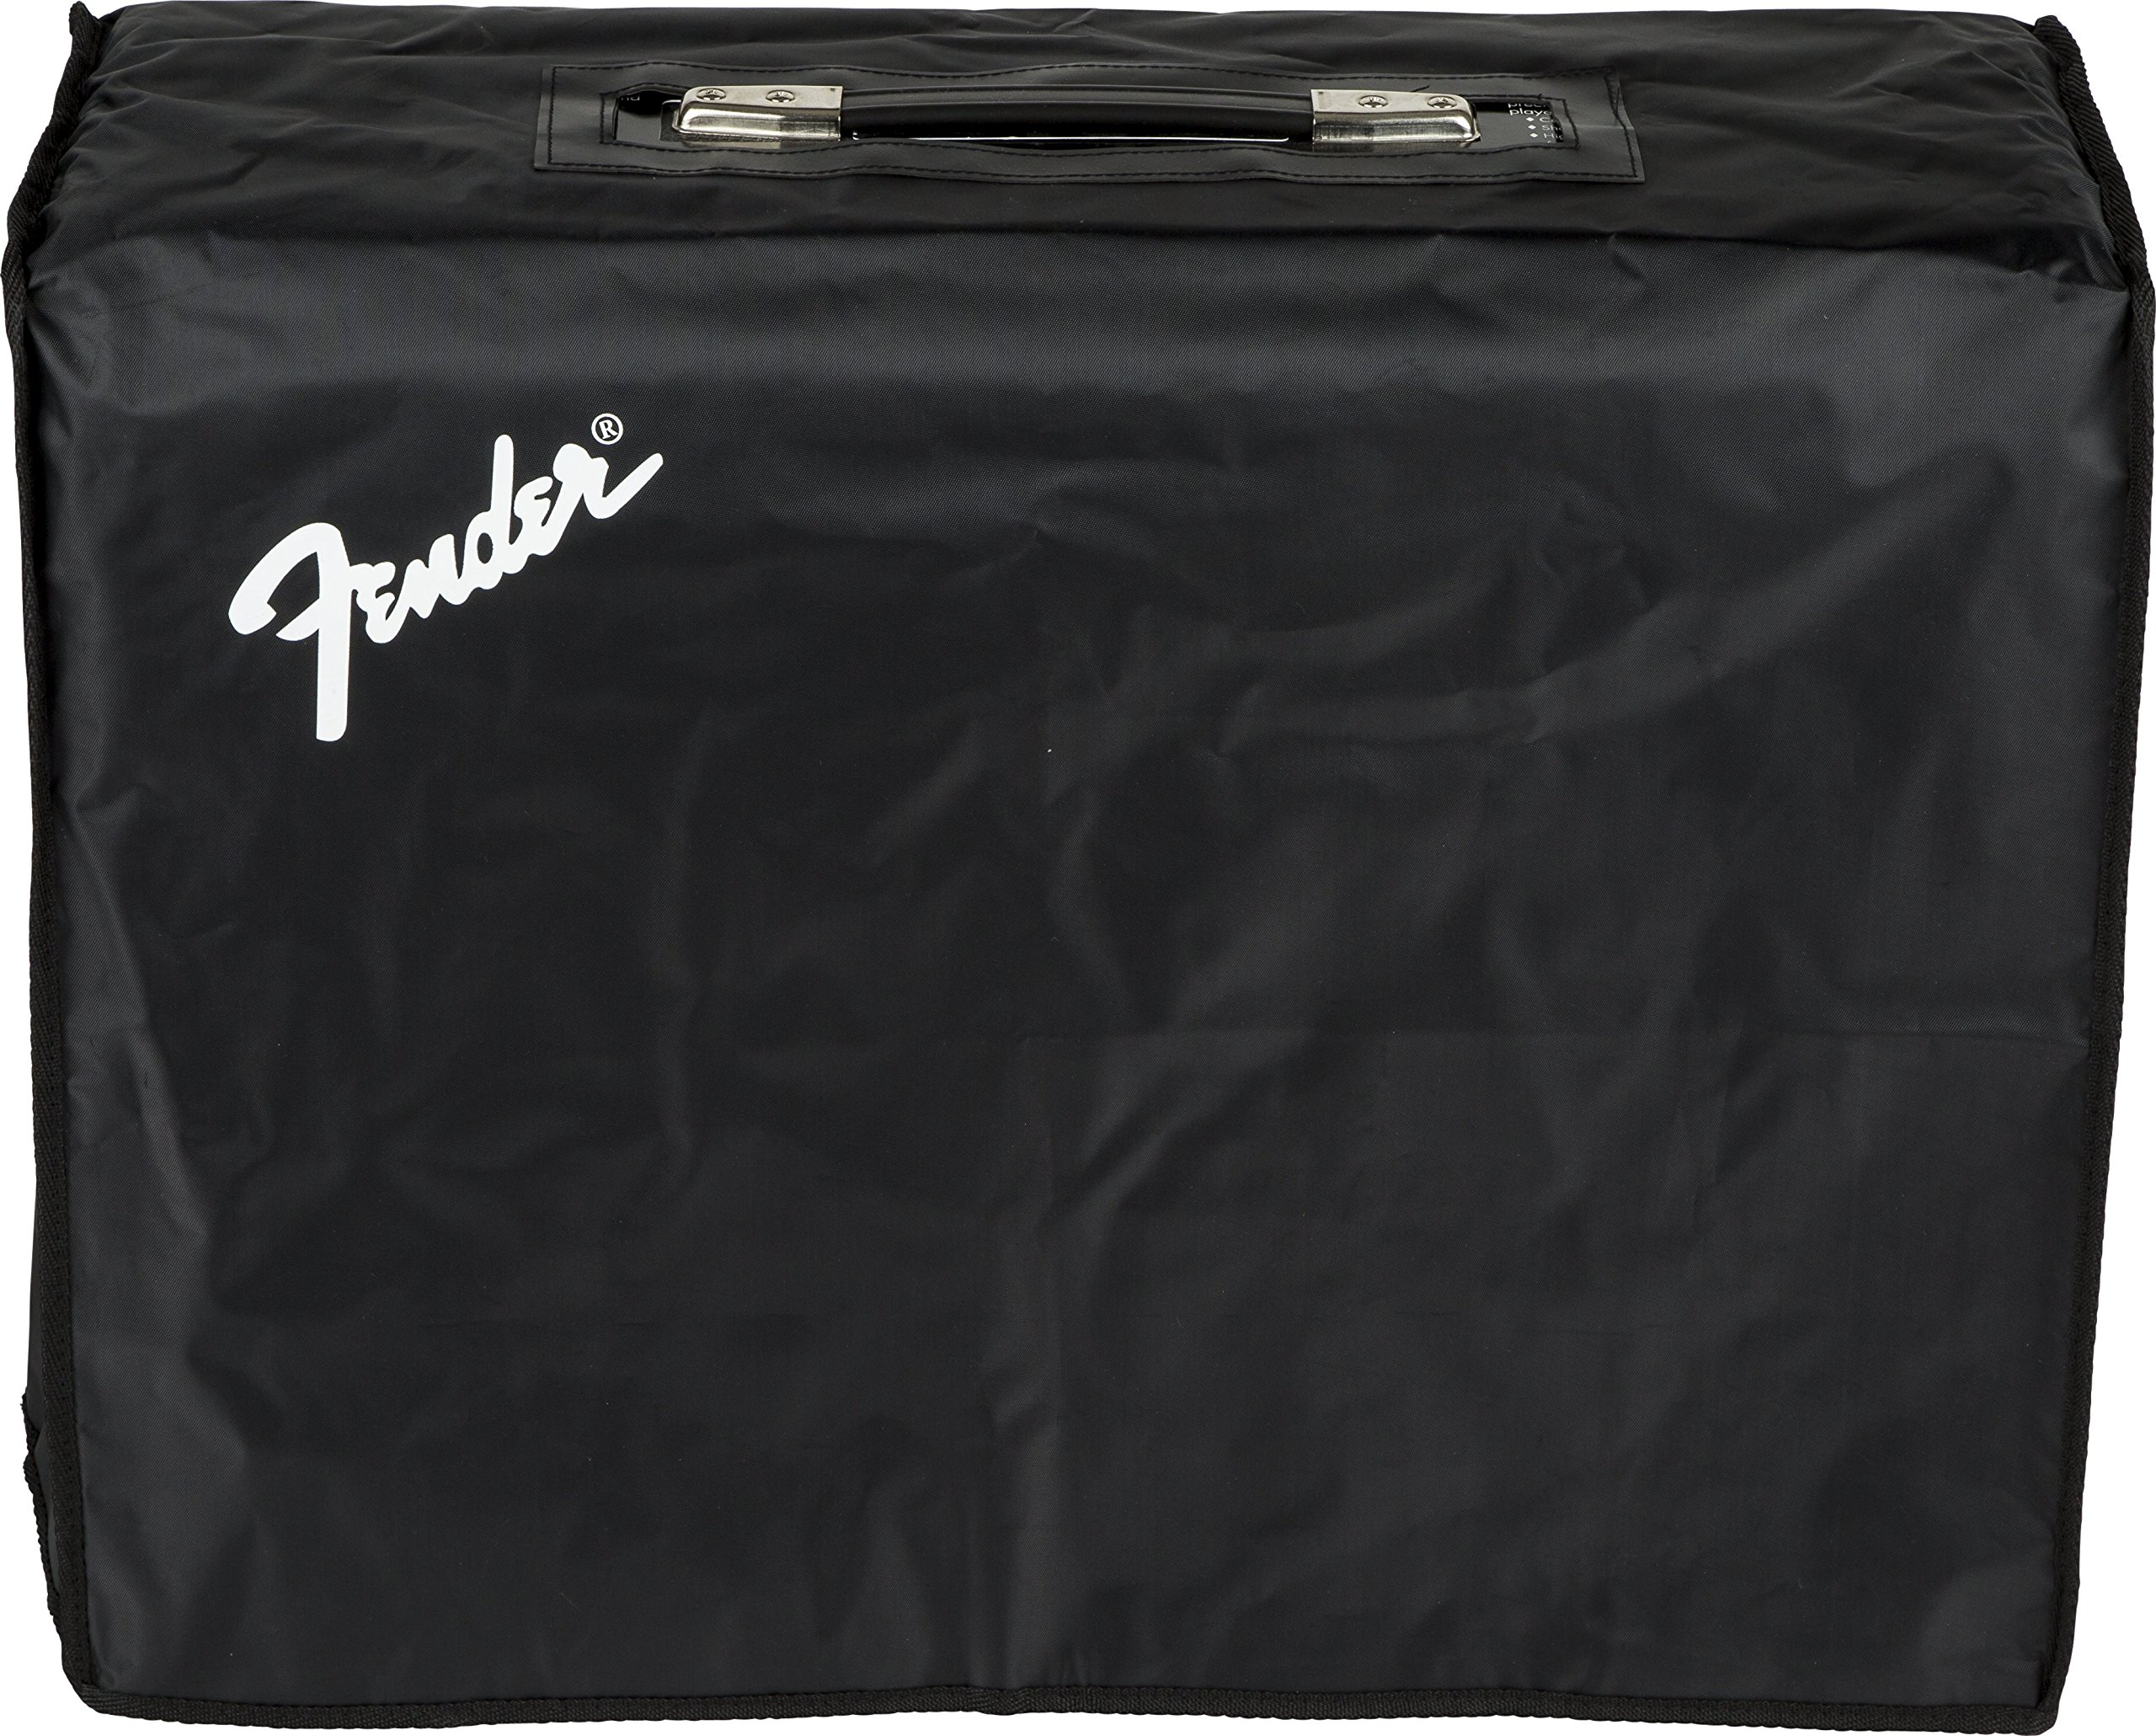 Fender '65 Twin Reverb Amplifier Cover - Black by Fender